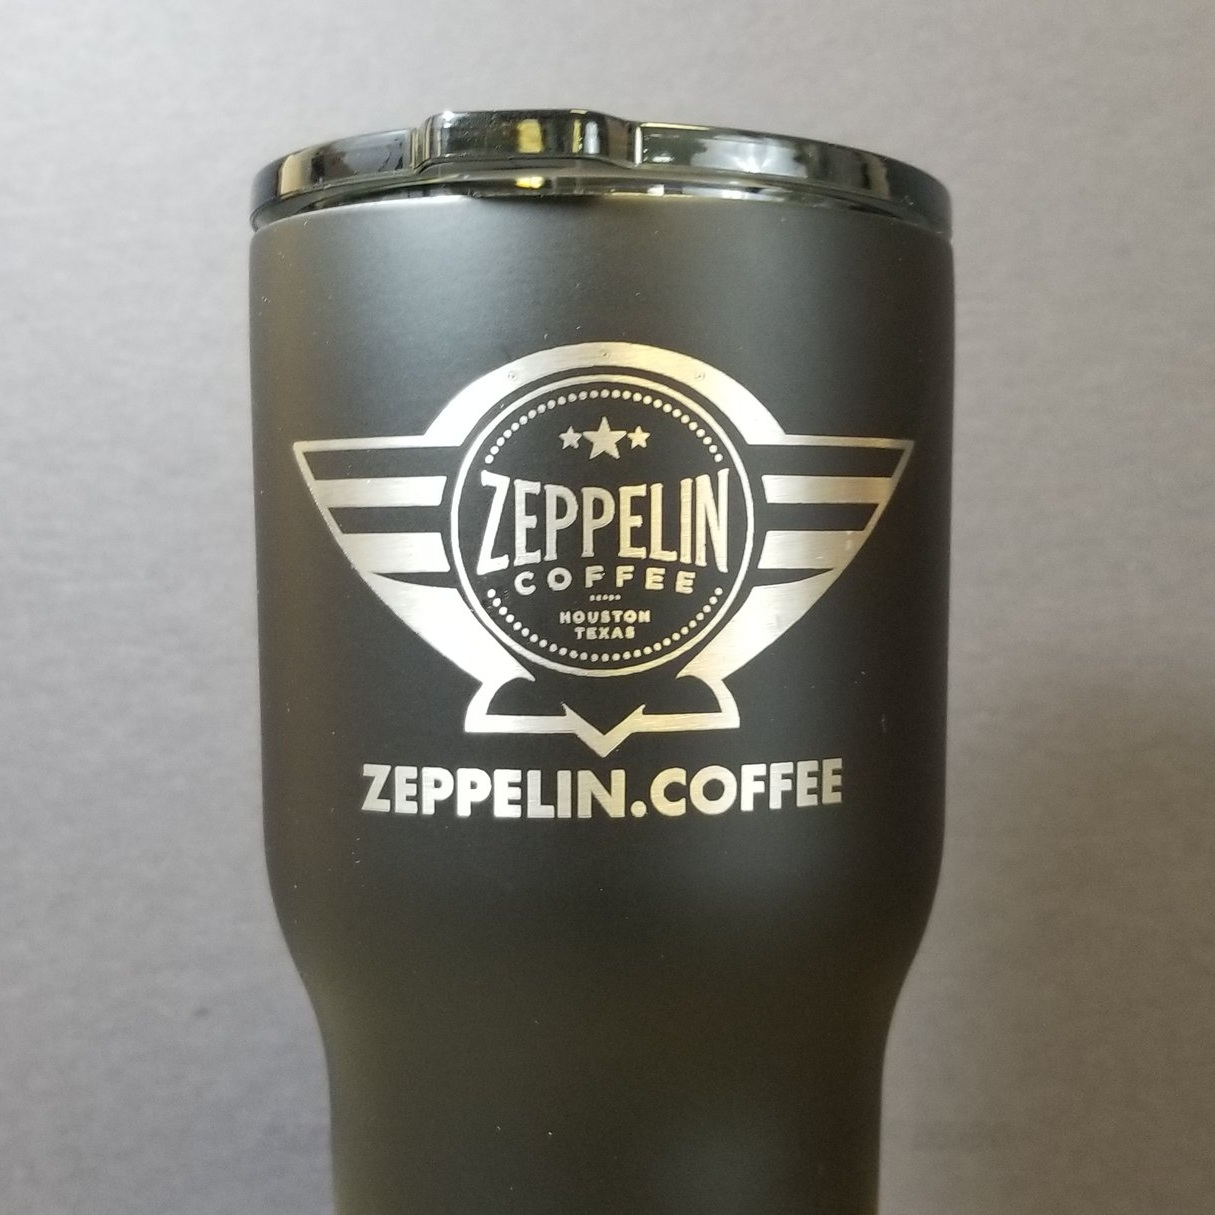 Branded Drinkware - the #1 Marketing Trend of 2019 -